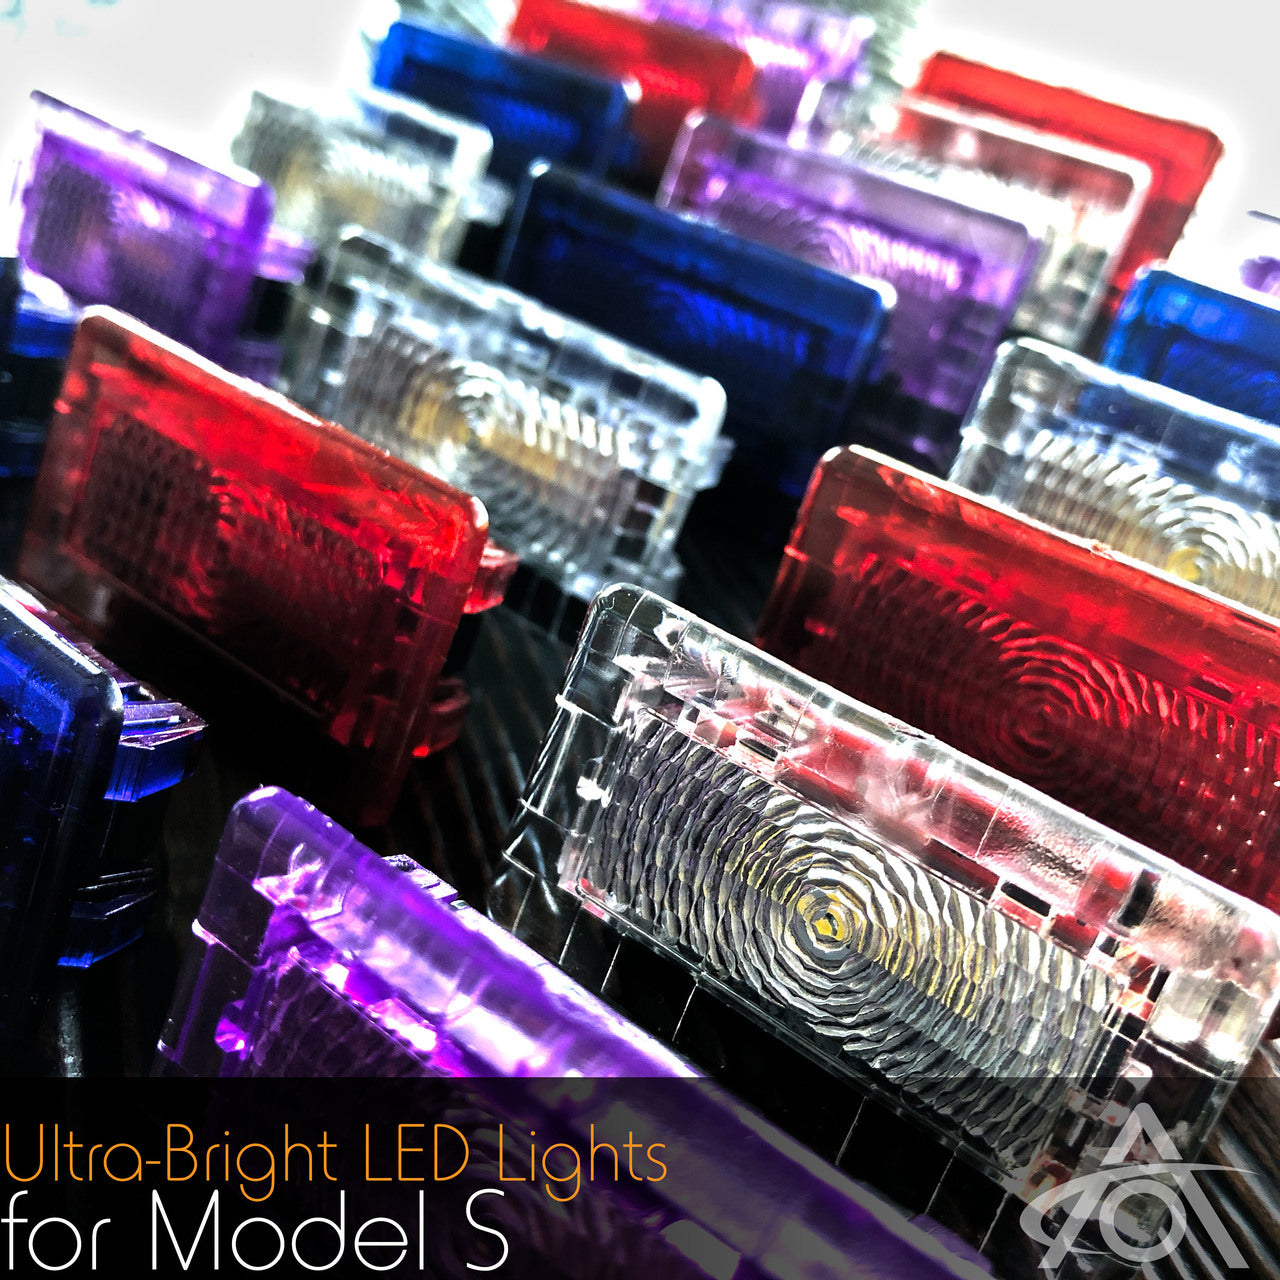 Ultra-Bright LED Lights - Model S